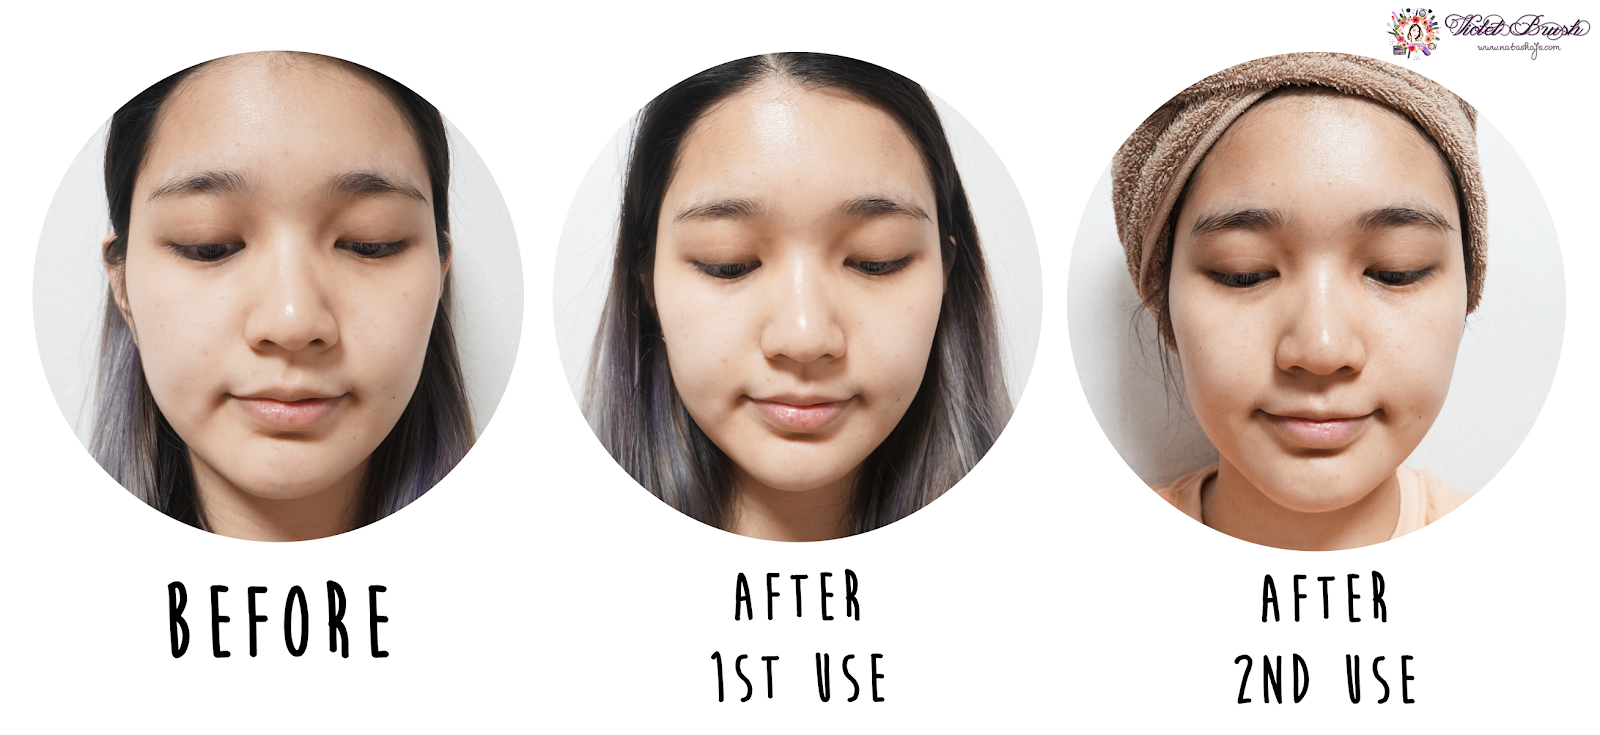 derma-roller-review-by-indonesian-beauty-blogger-results-before-after